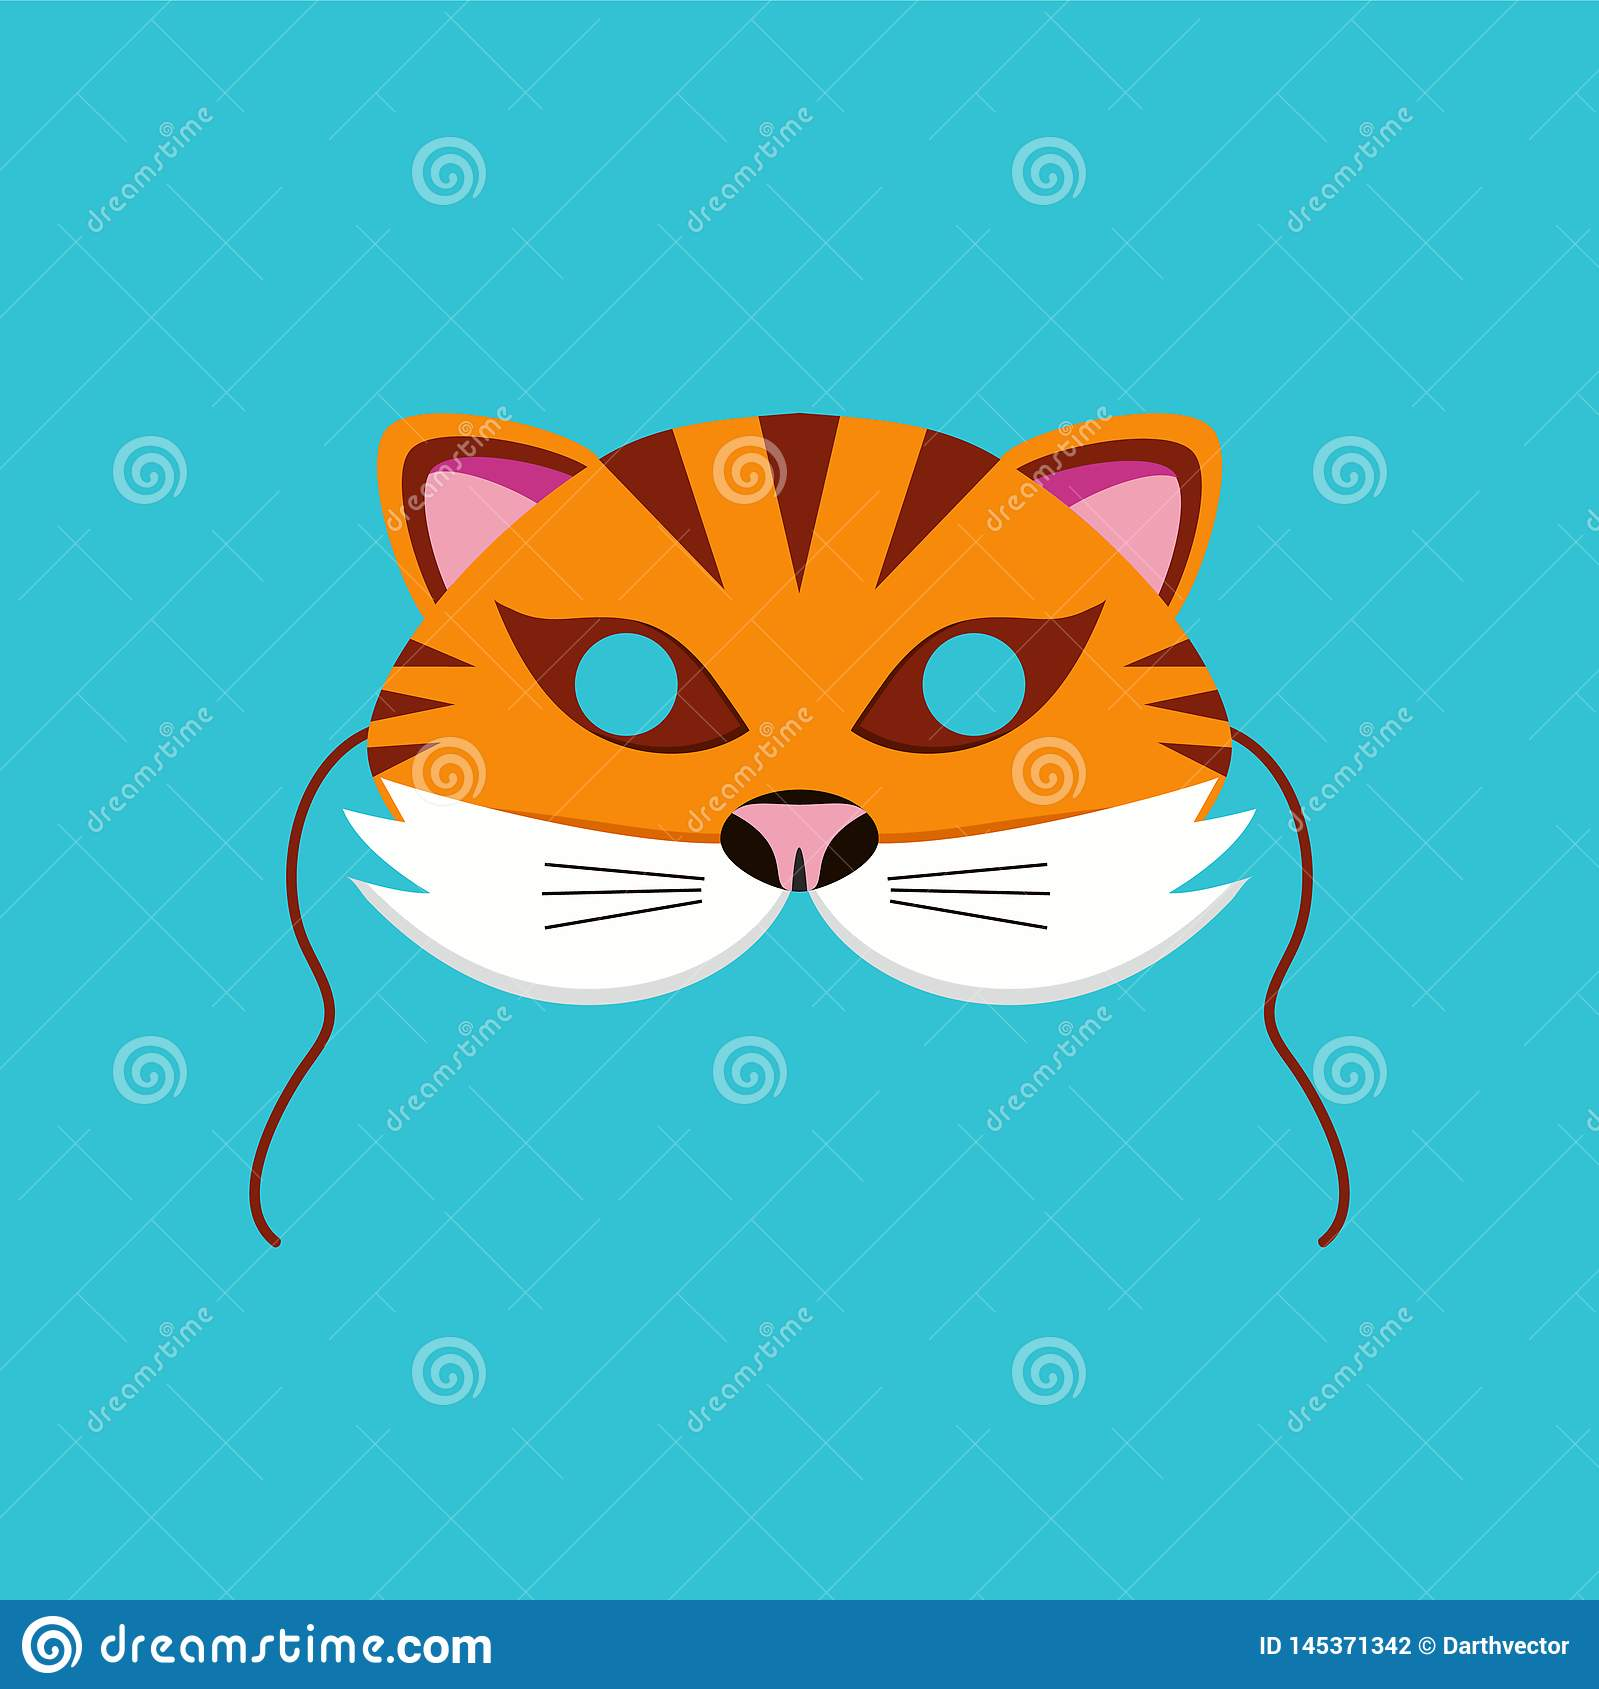 Mask of tiger animal for kids birthday or costume party vector illustrations